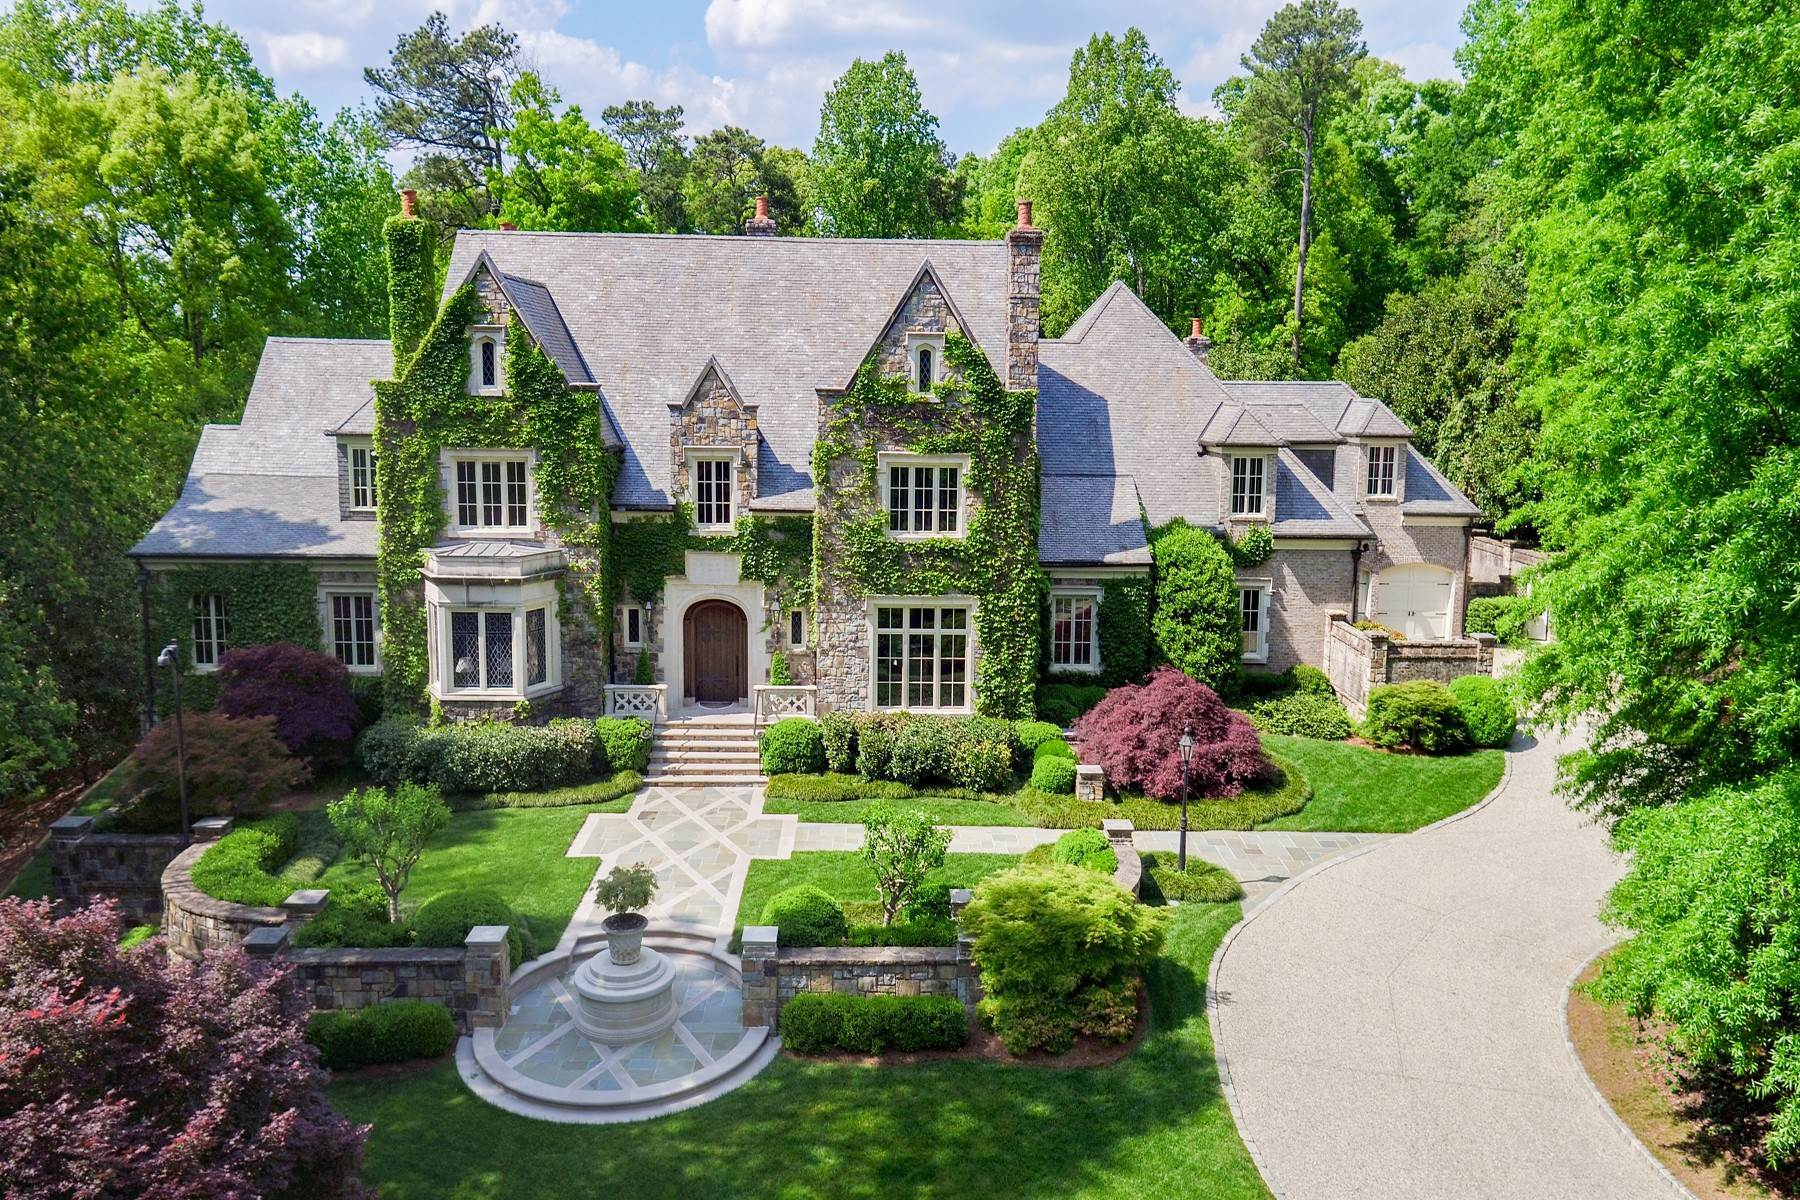 Single Family Homes for Sale at Exquisite English Manor Estate on 3+/- Private Acres in Buckhead 3685 Paces Ferry Road Atlanta, Georgia 30327 United States